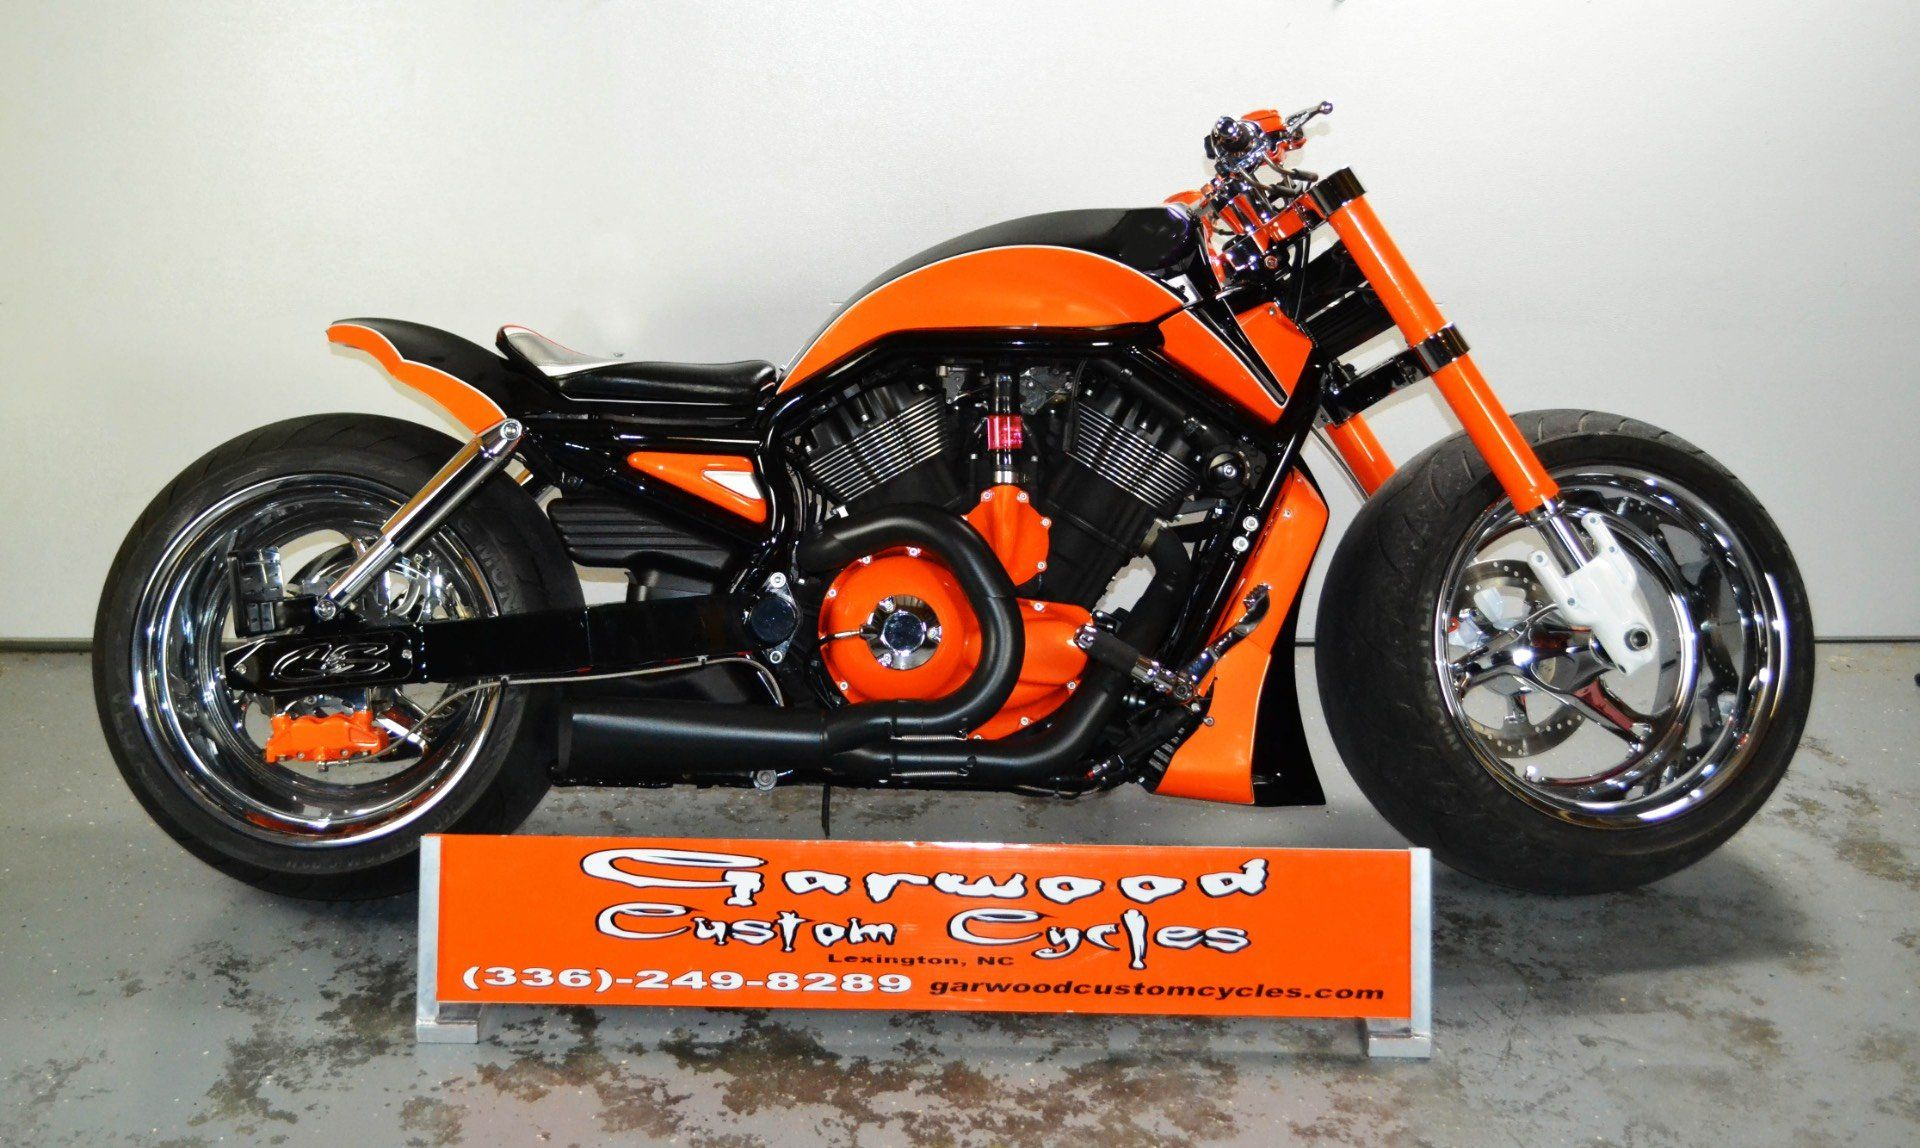 2012 Harley Davidson V-ROD in Lexington, North Carolina - Photo 1